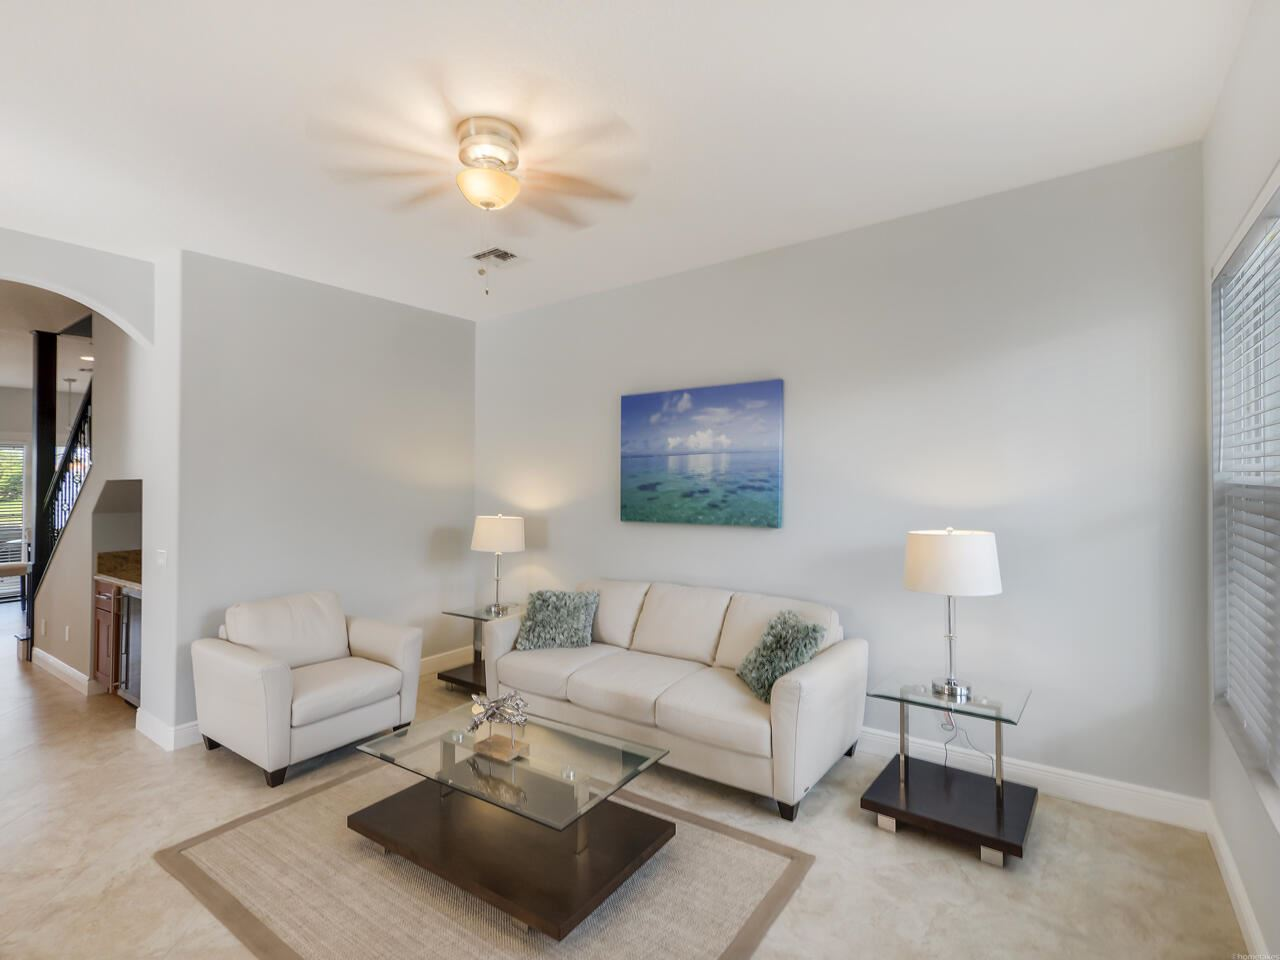 Photo of 190 Arlington Road, West Palm Beach, FL 33405 (MLS # RX-10715358)